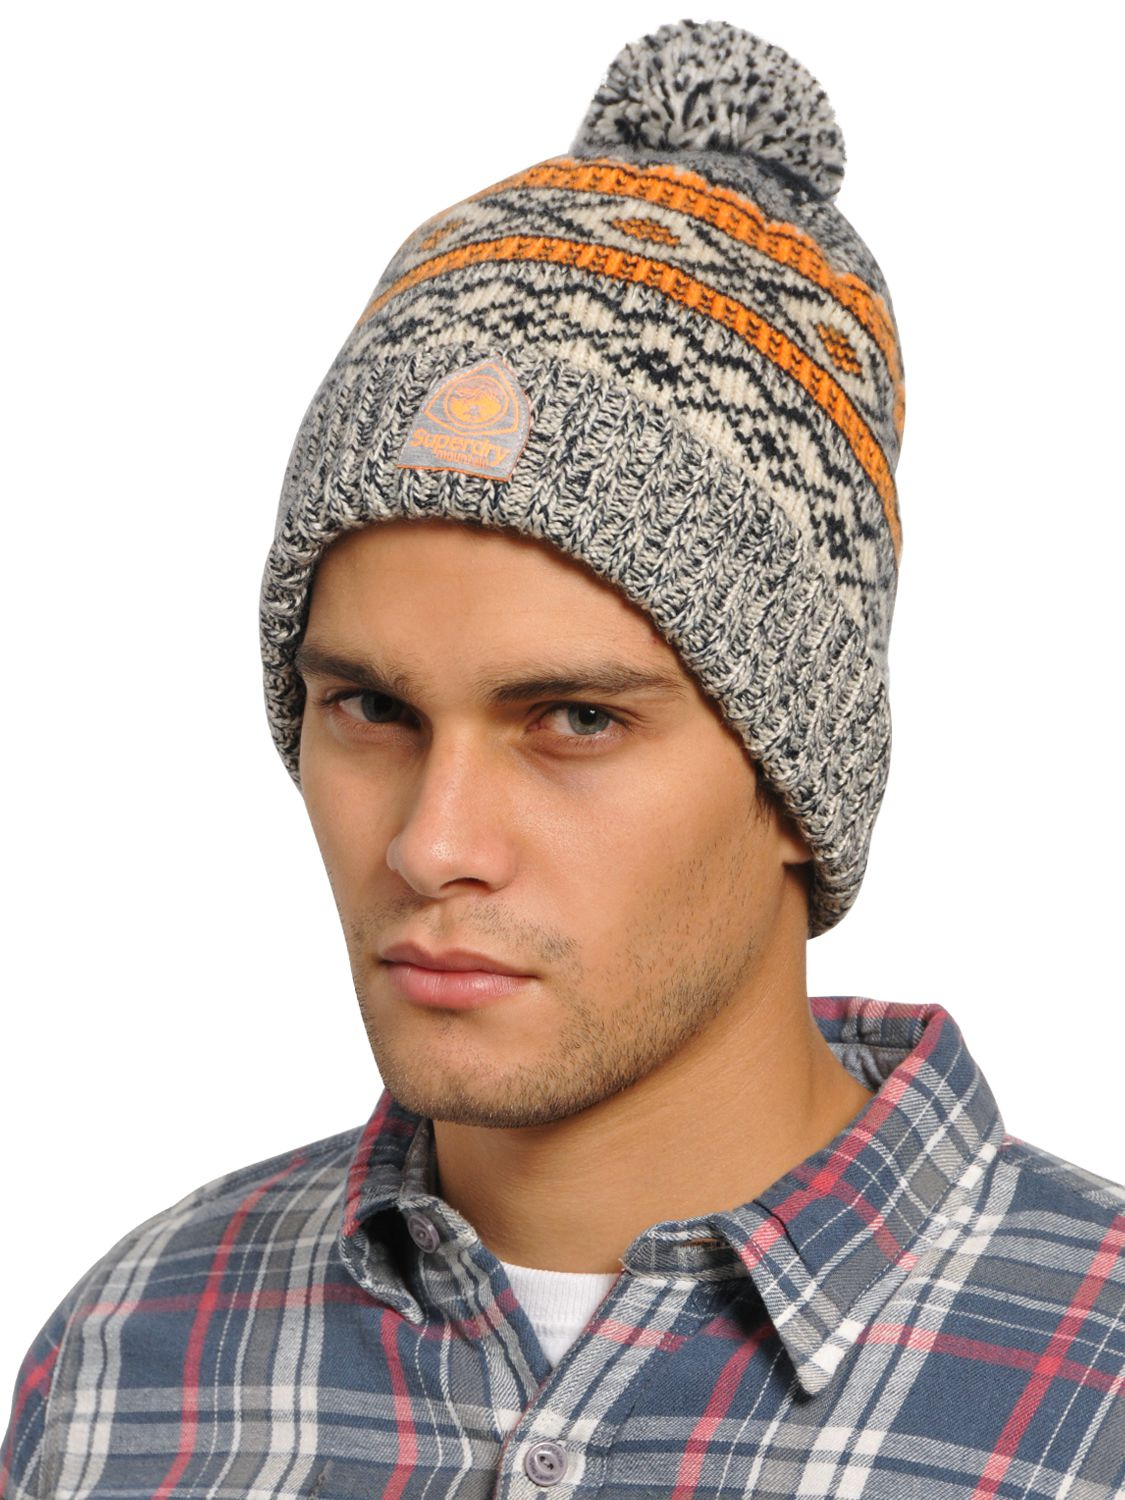 d693ddd94 Superdry Beanie Hat Mens - The Best Hat 2018